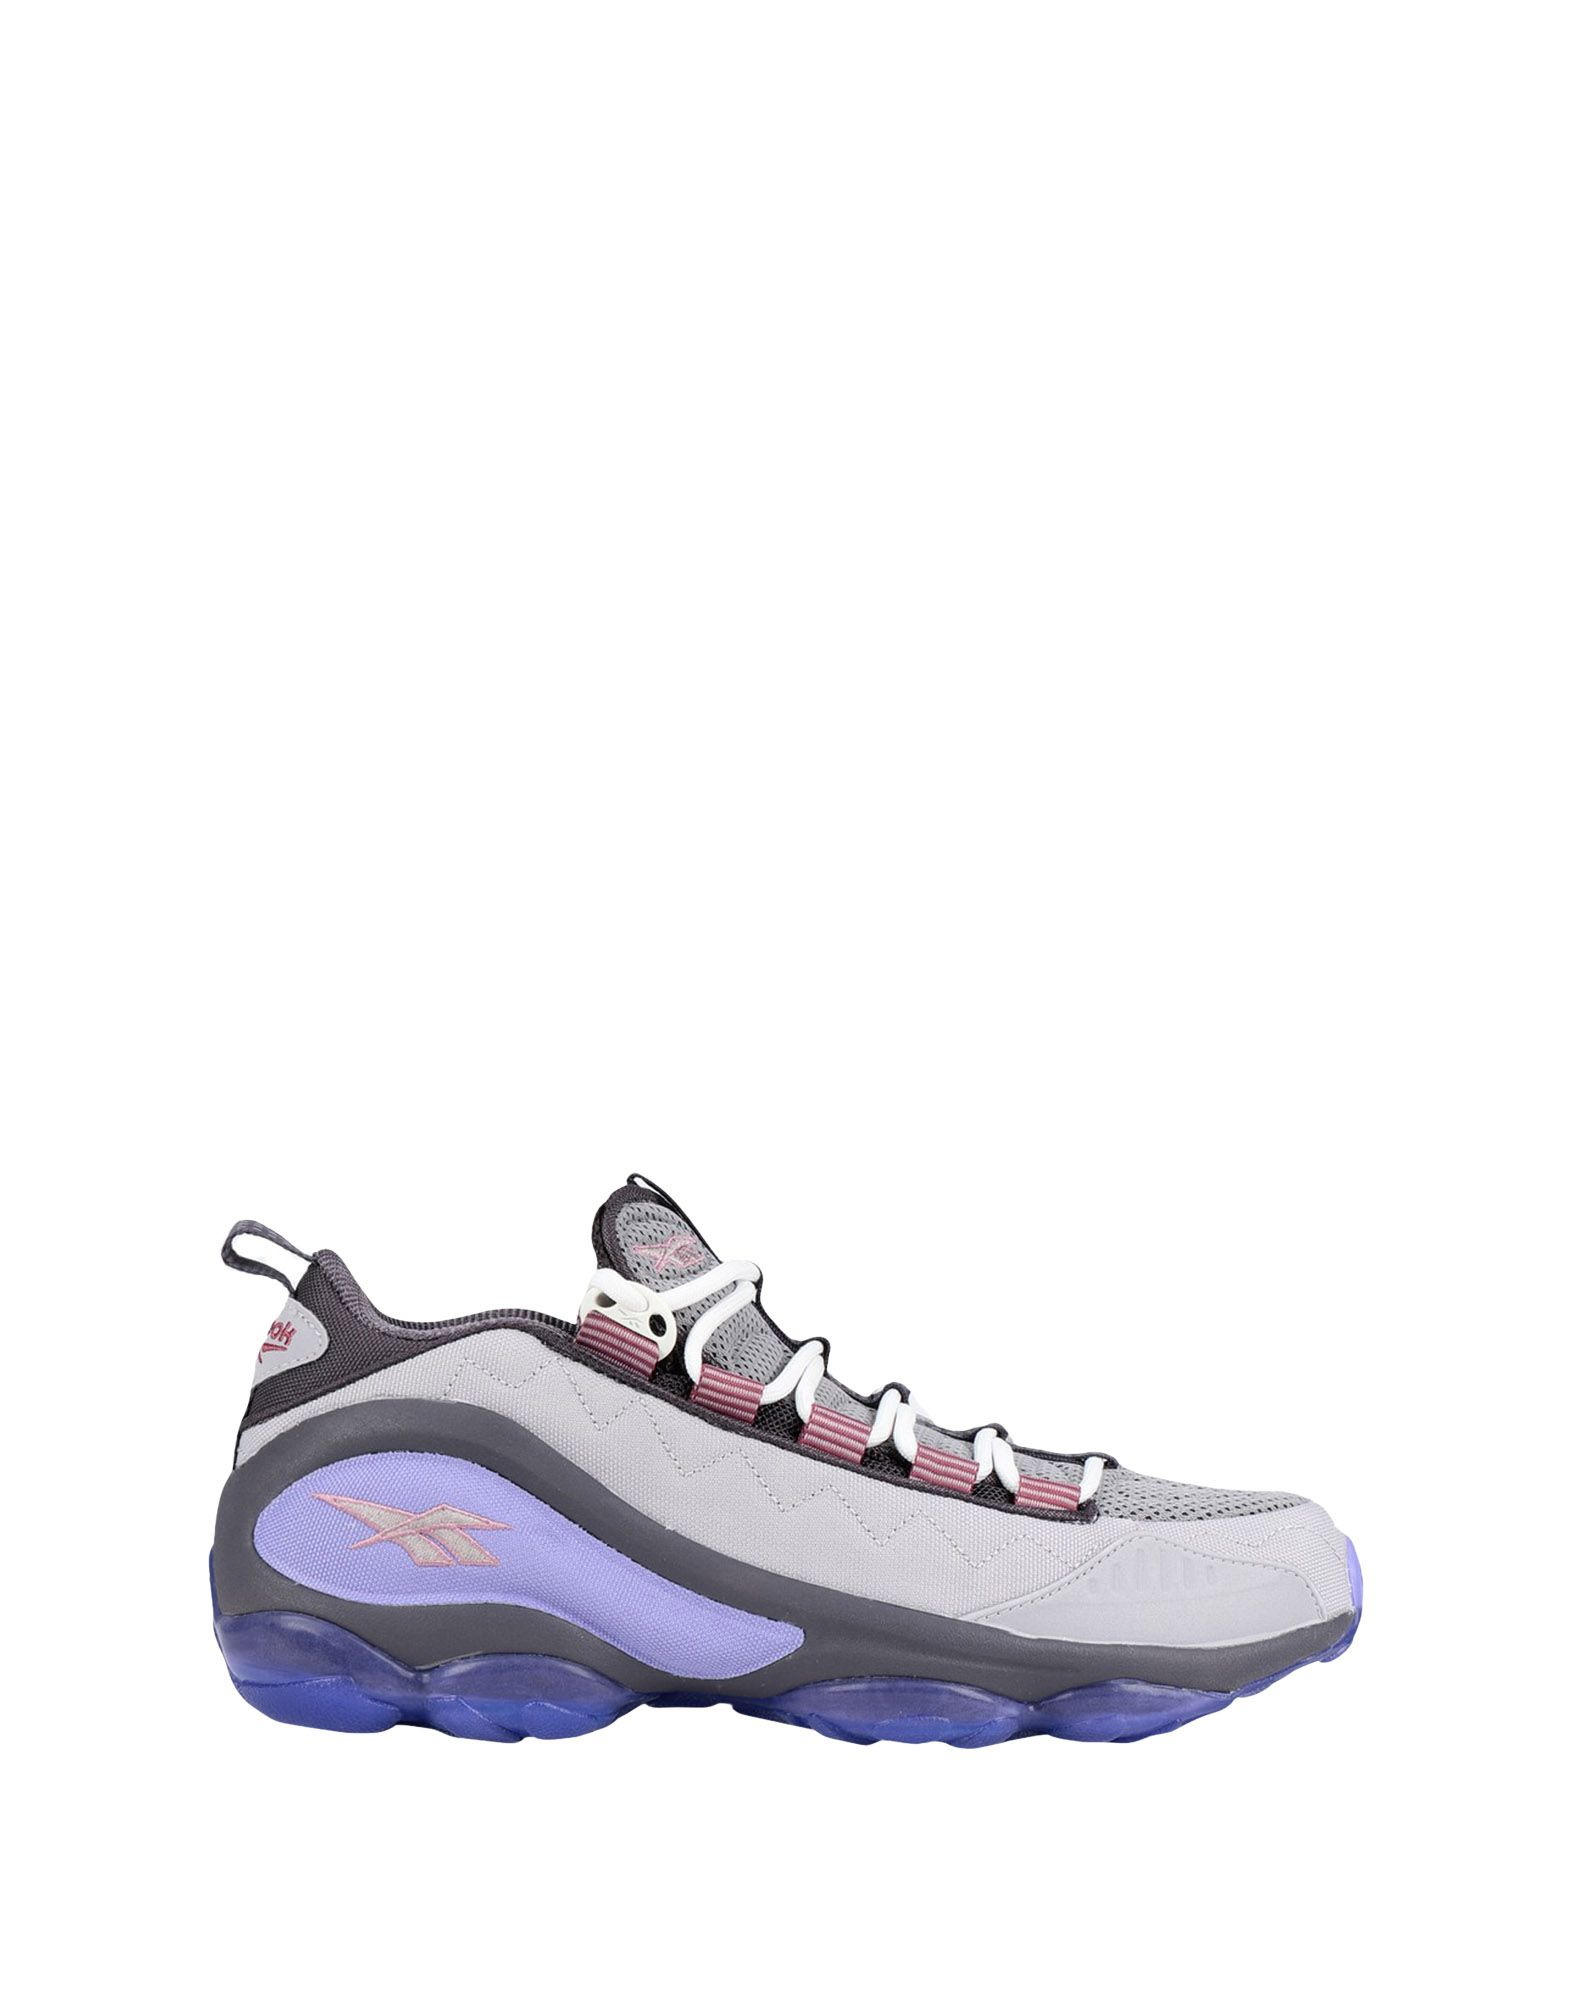 Sneakers - Reebok Dmx Run 10 - Sneakers Donna - 11541062XJ 16d007